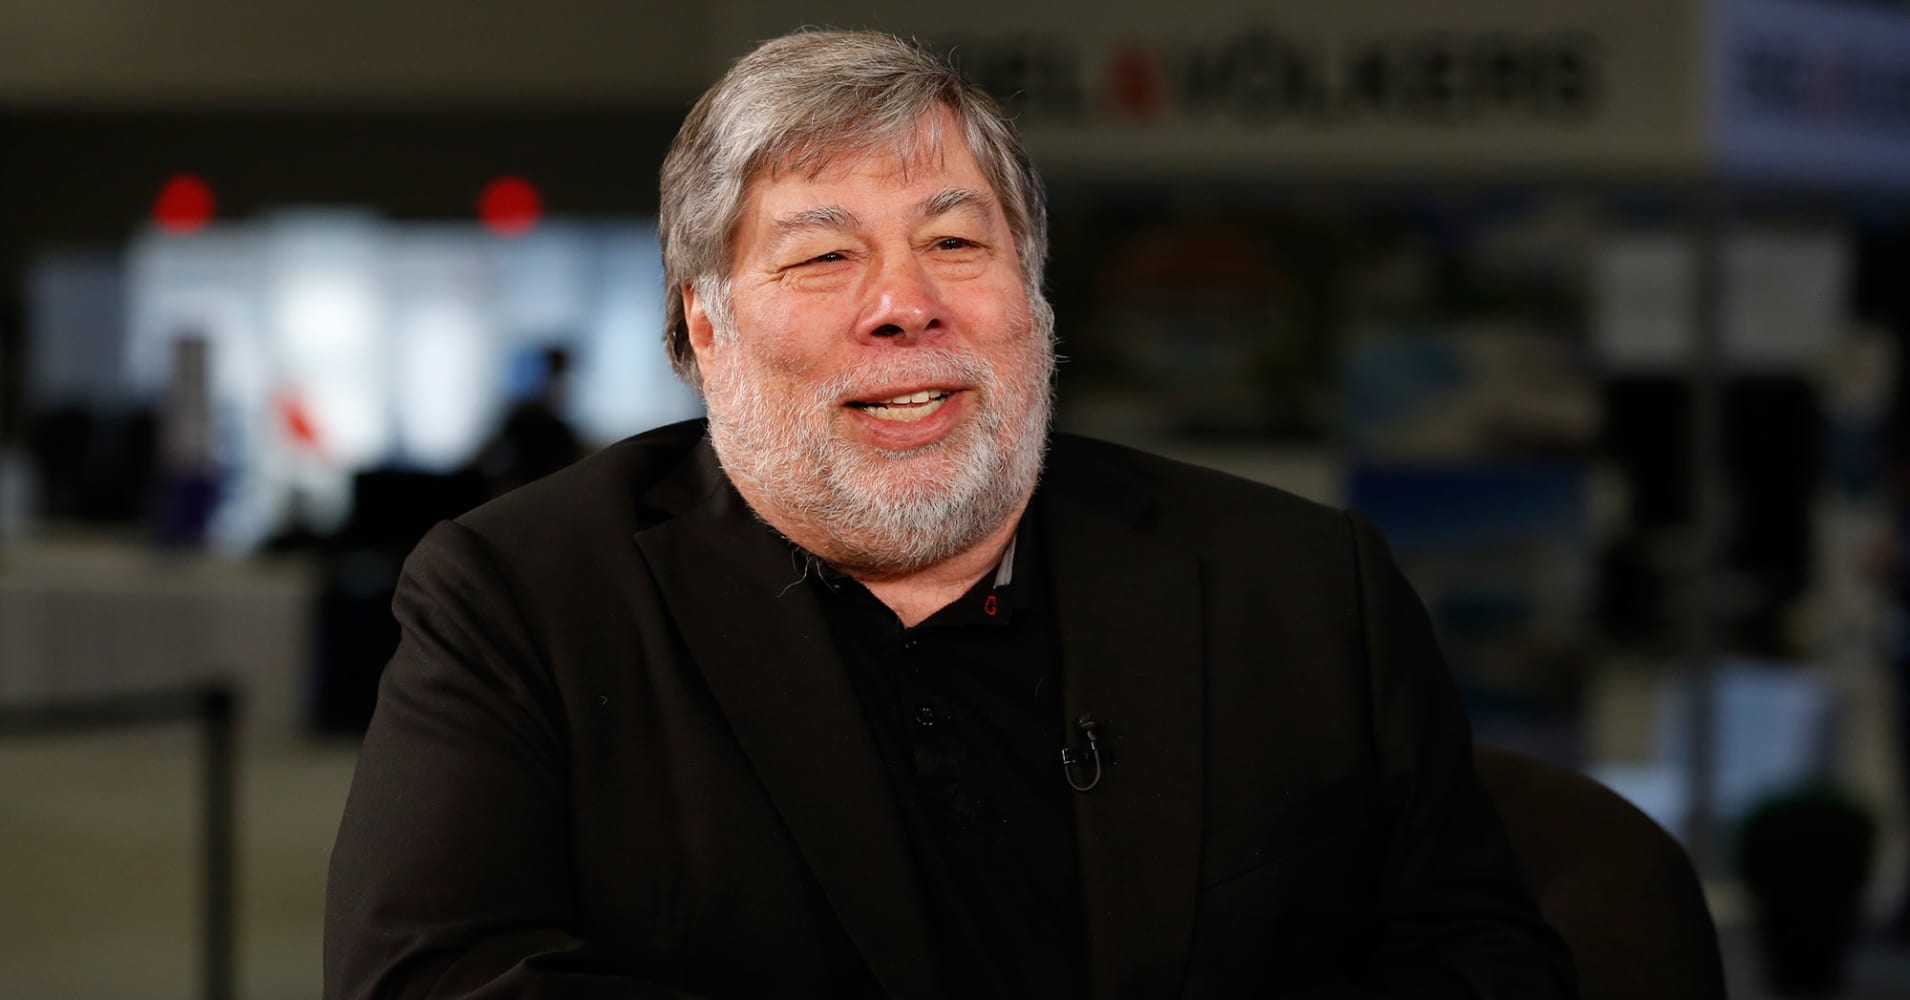 Steve Wozniak speaking at eMerge in Miami on June 12, 2017.